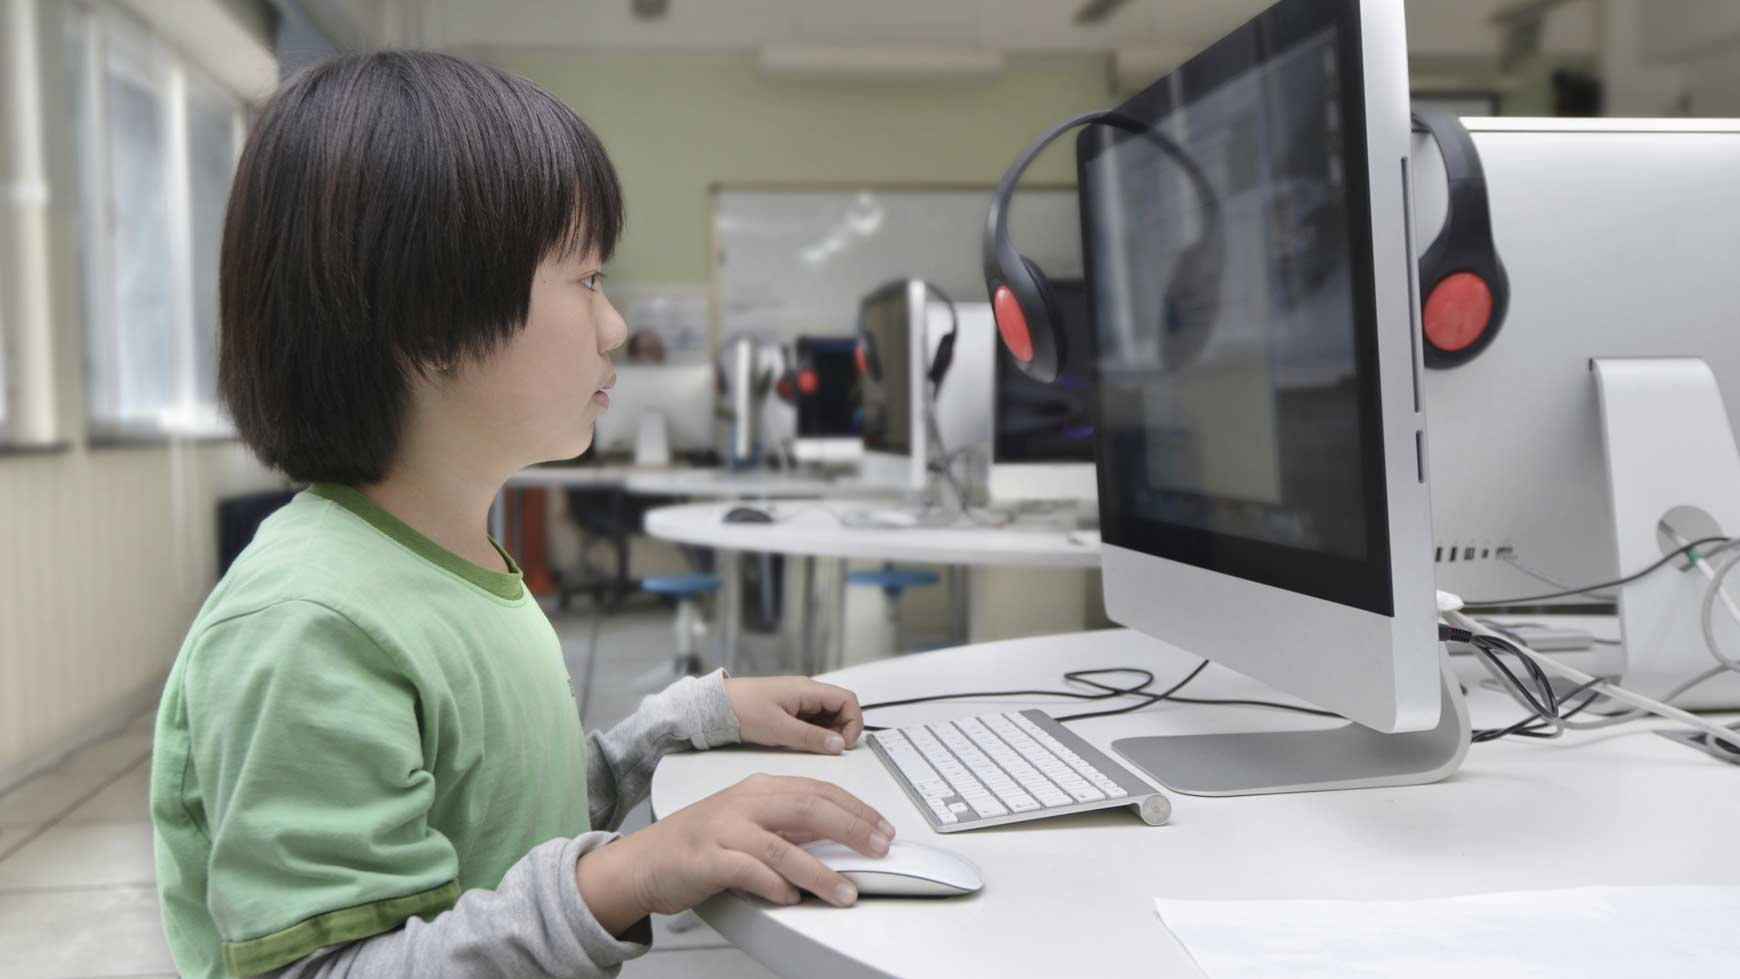 List Of Personal Technology That Students Can Use In High Schools And Colleges